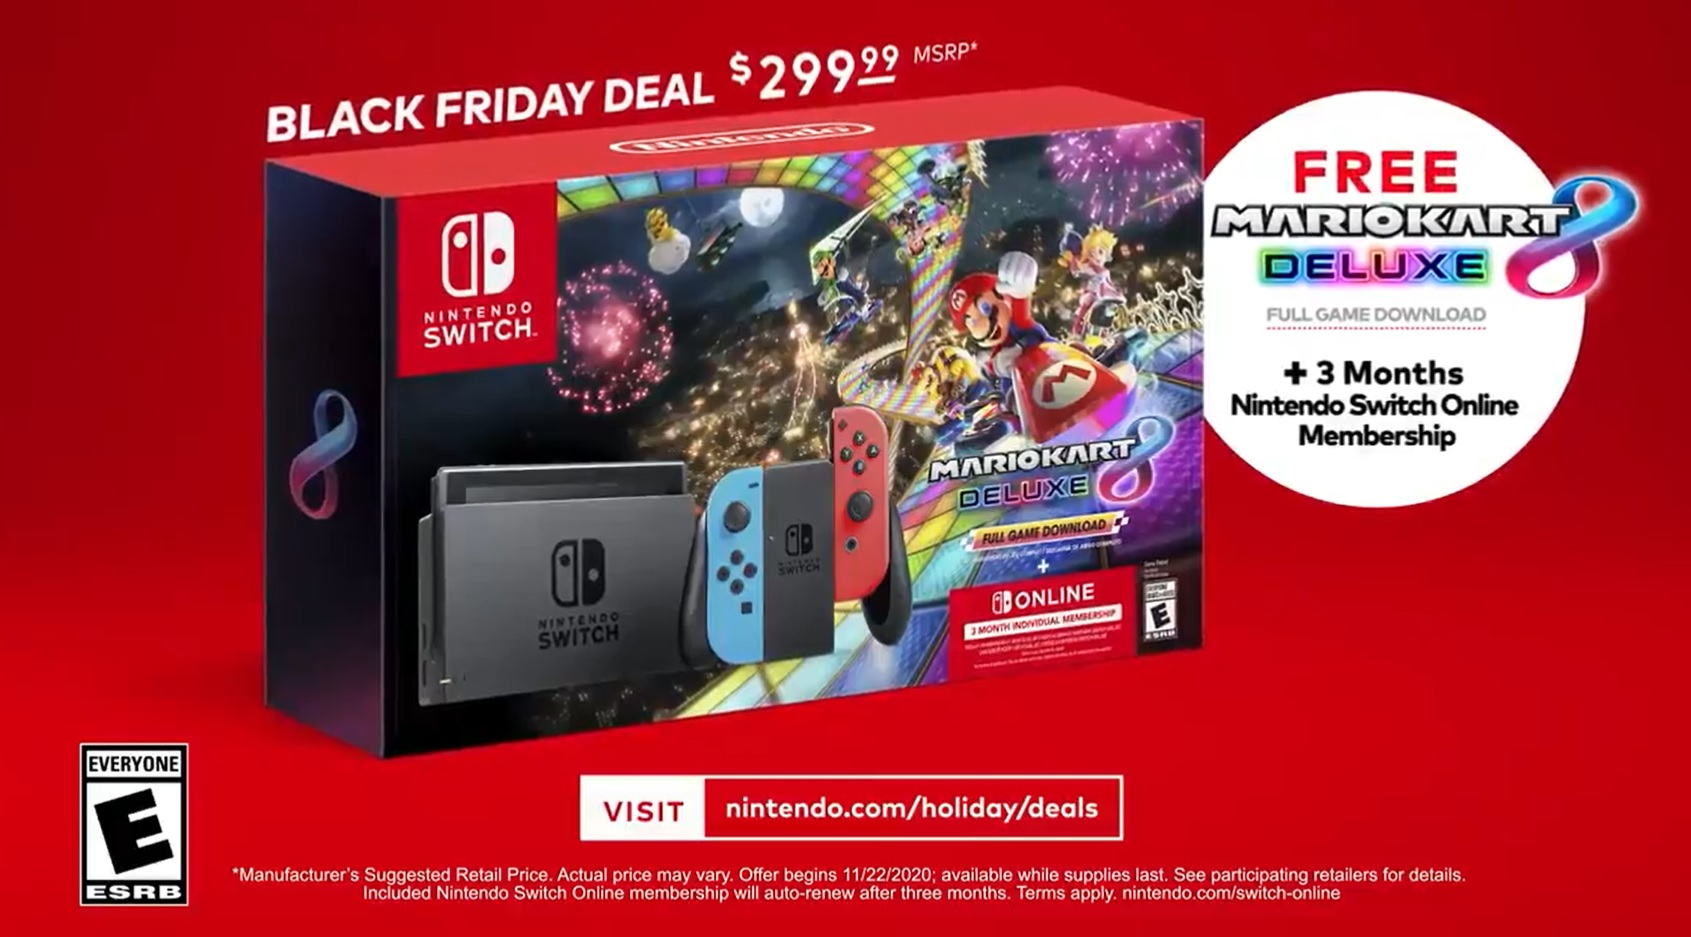 Nintendo S Black Friday 2020 Deals Make Their Return This Year